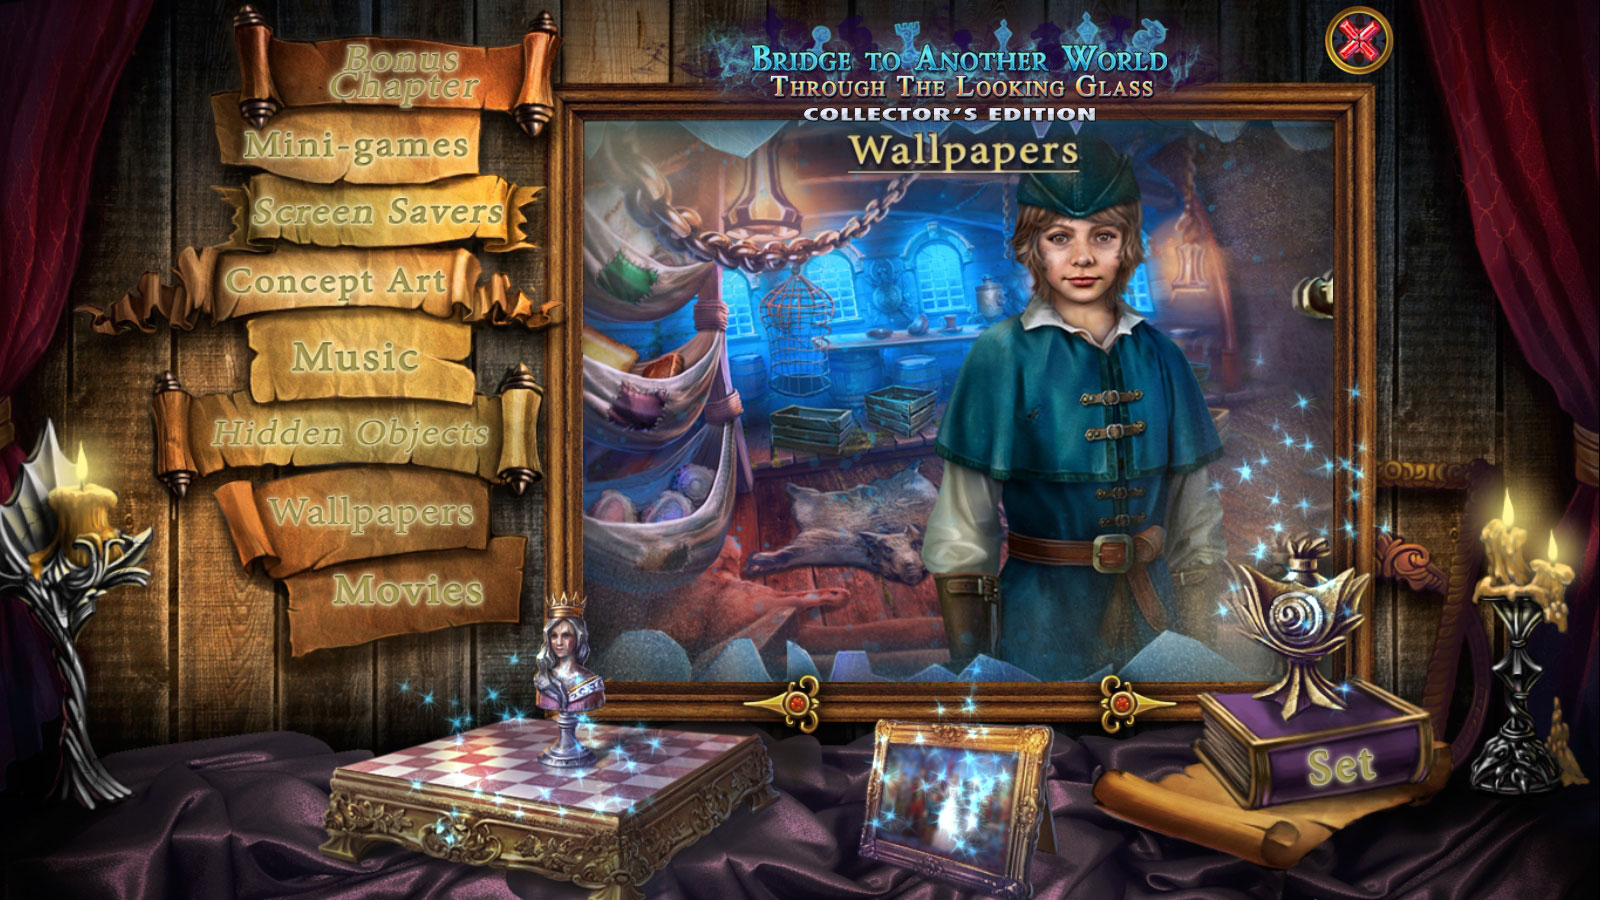 bridge to another world: through the looking glass collector's edition free download screenshots 9